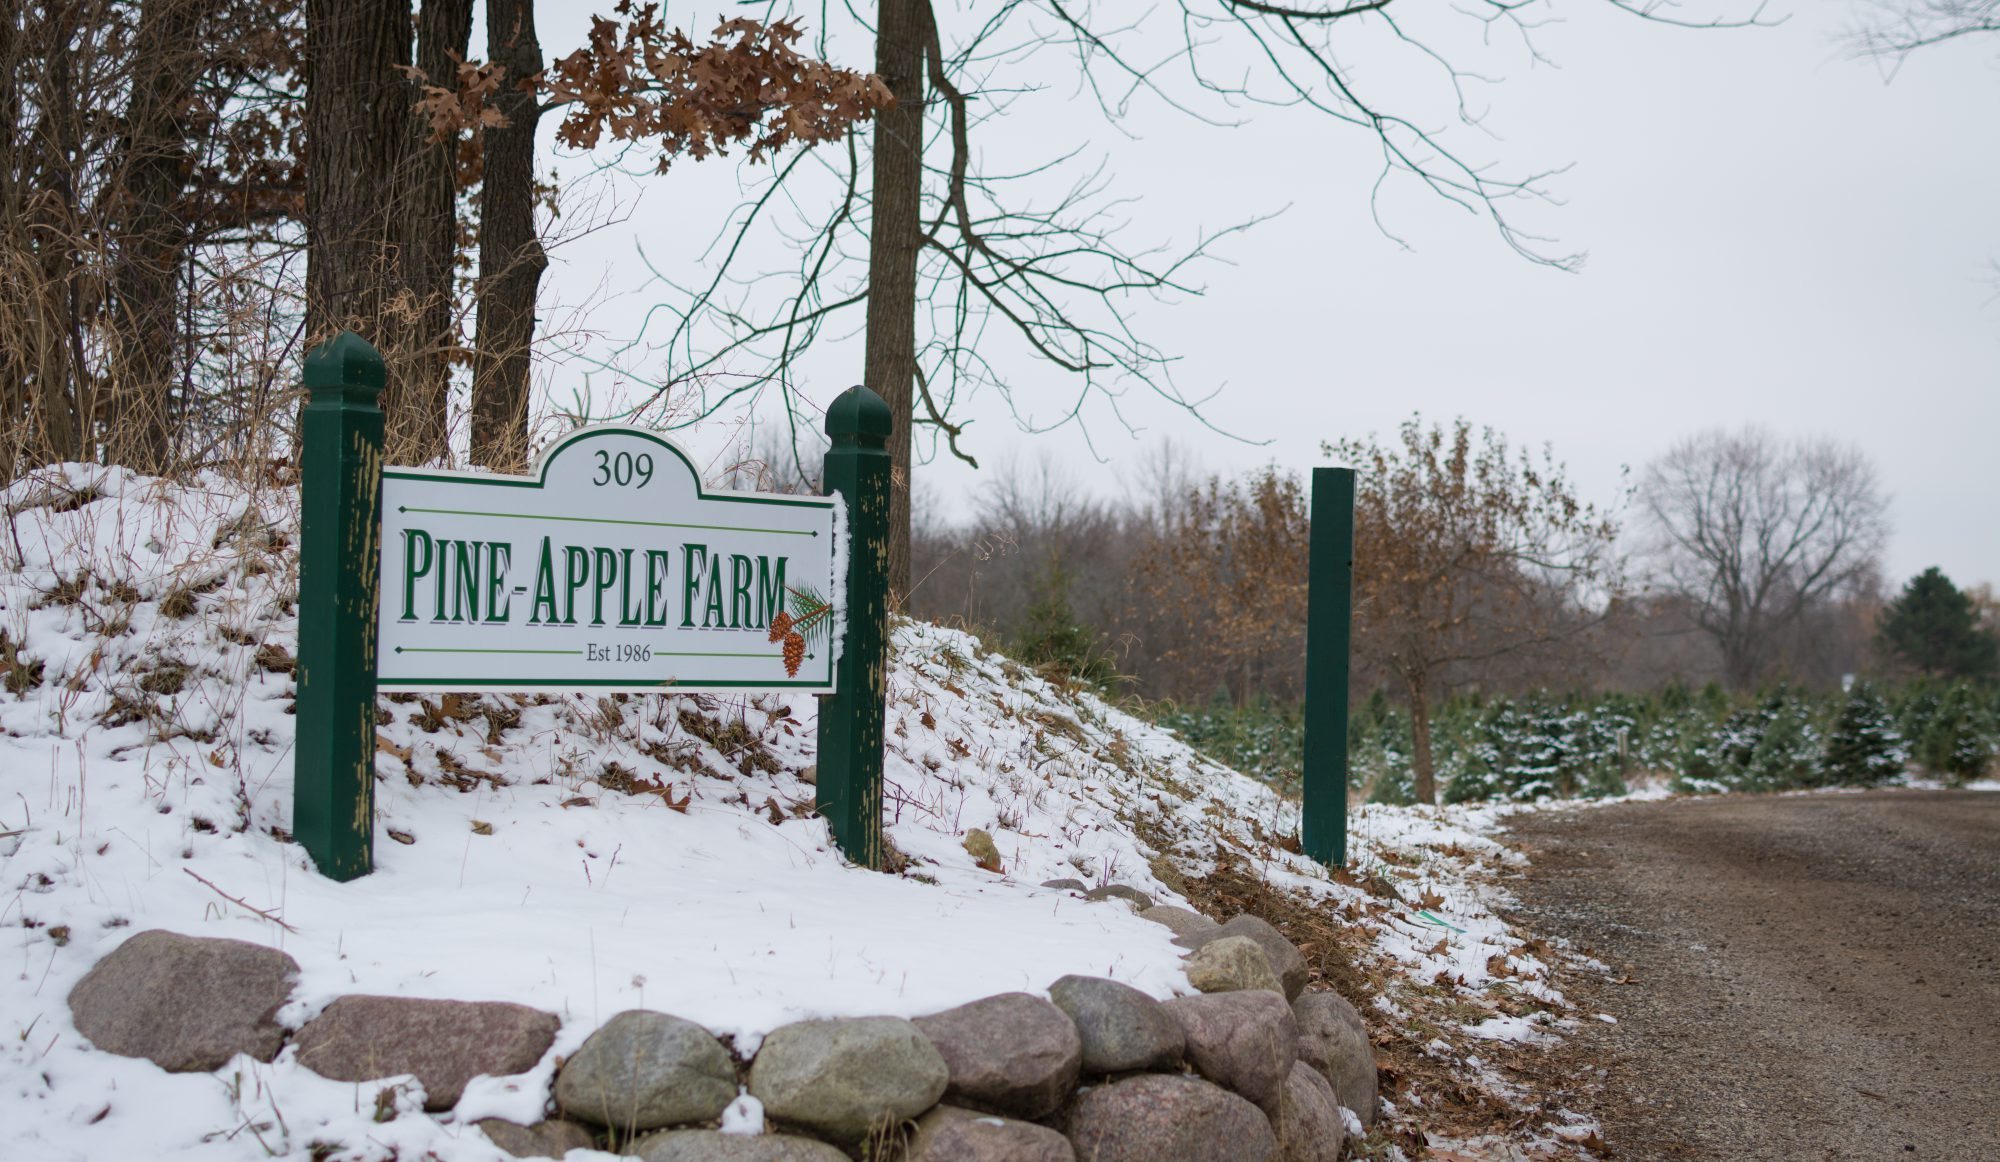 Pine-Apple Farm